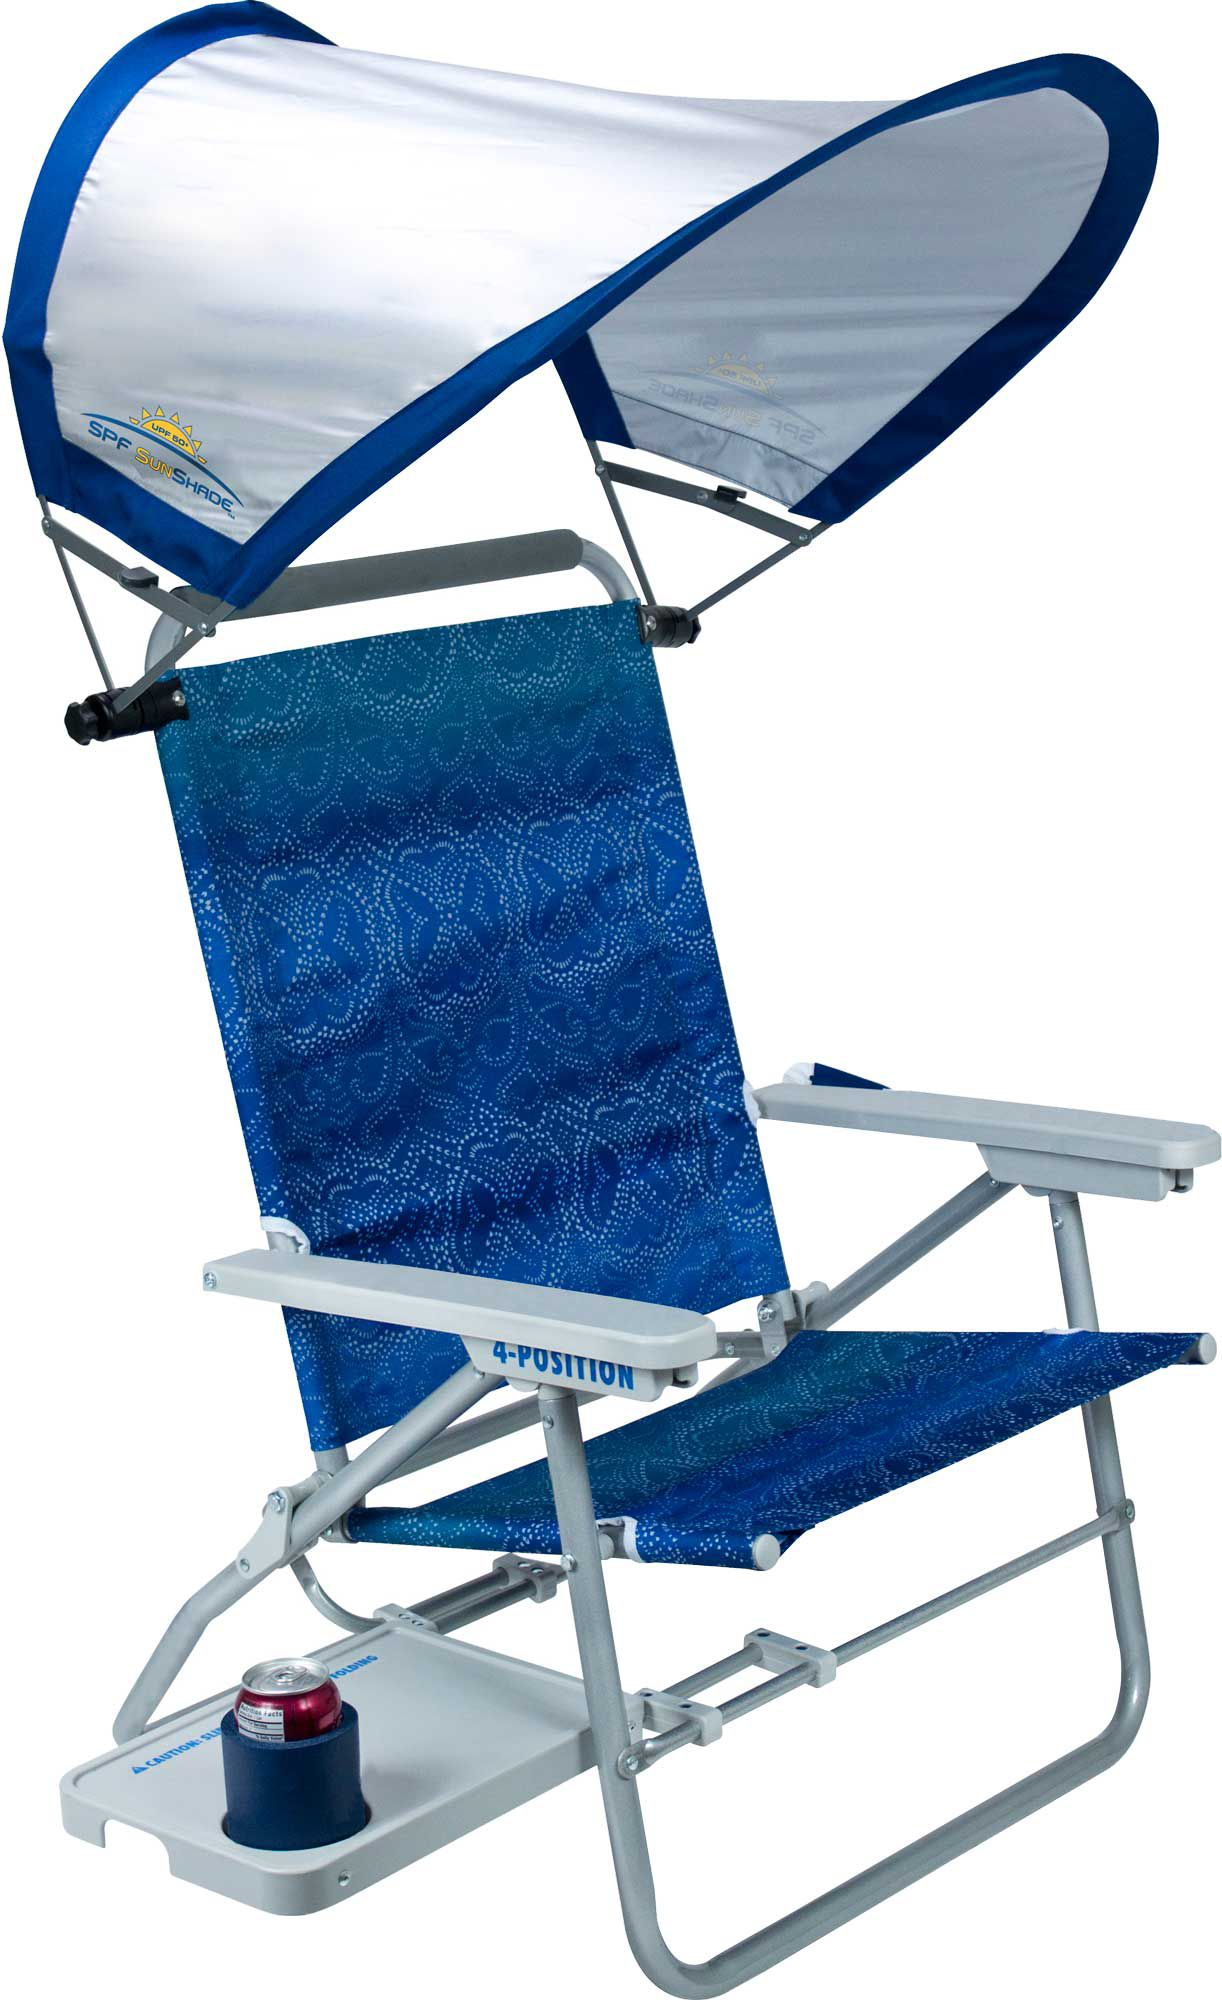 big and tall hunting chairs office chair mesh seat camping folding best price guarantee at dick s product image gci waterside surf beach with sunshade